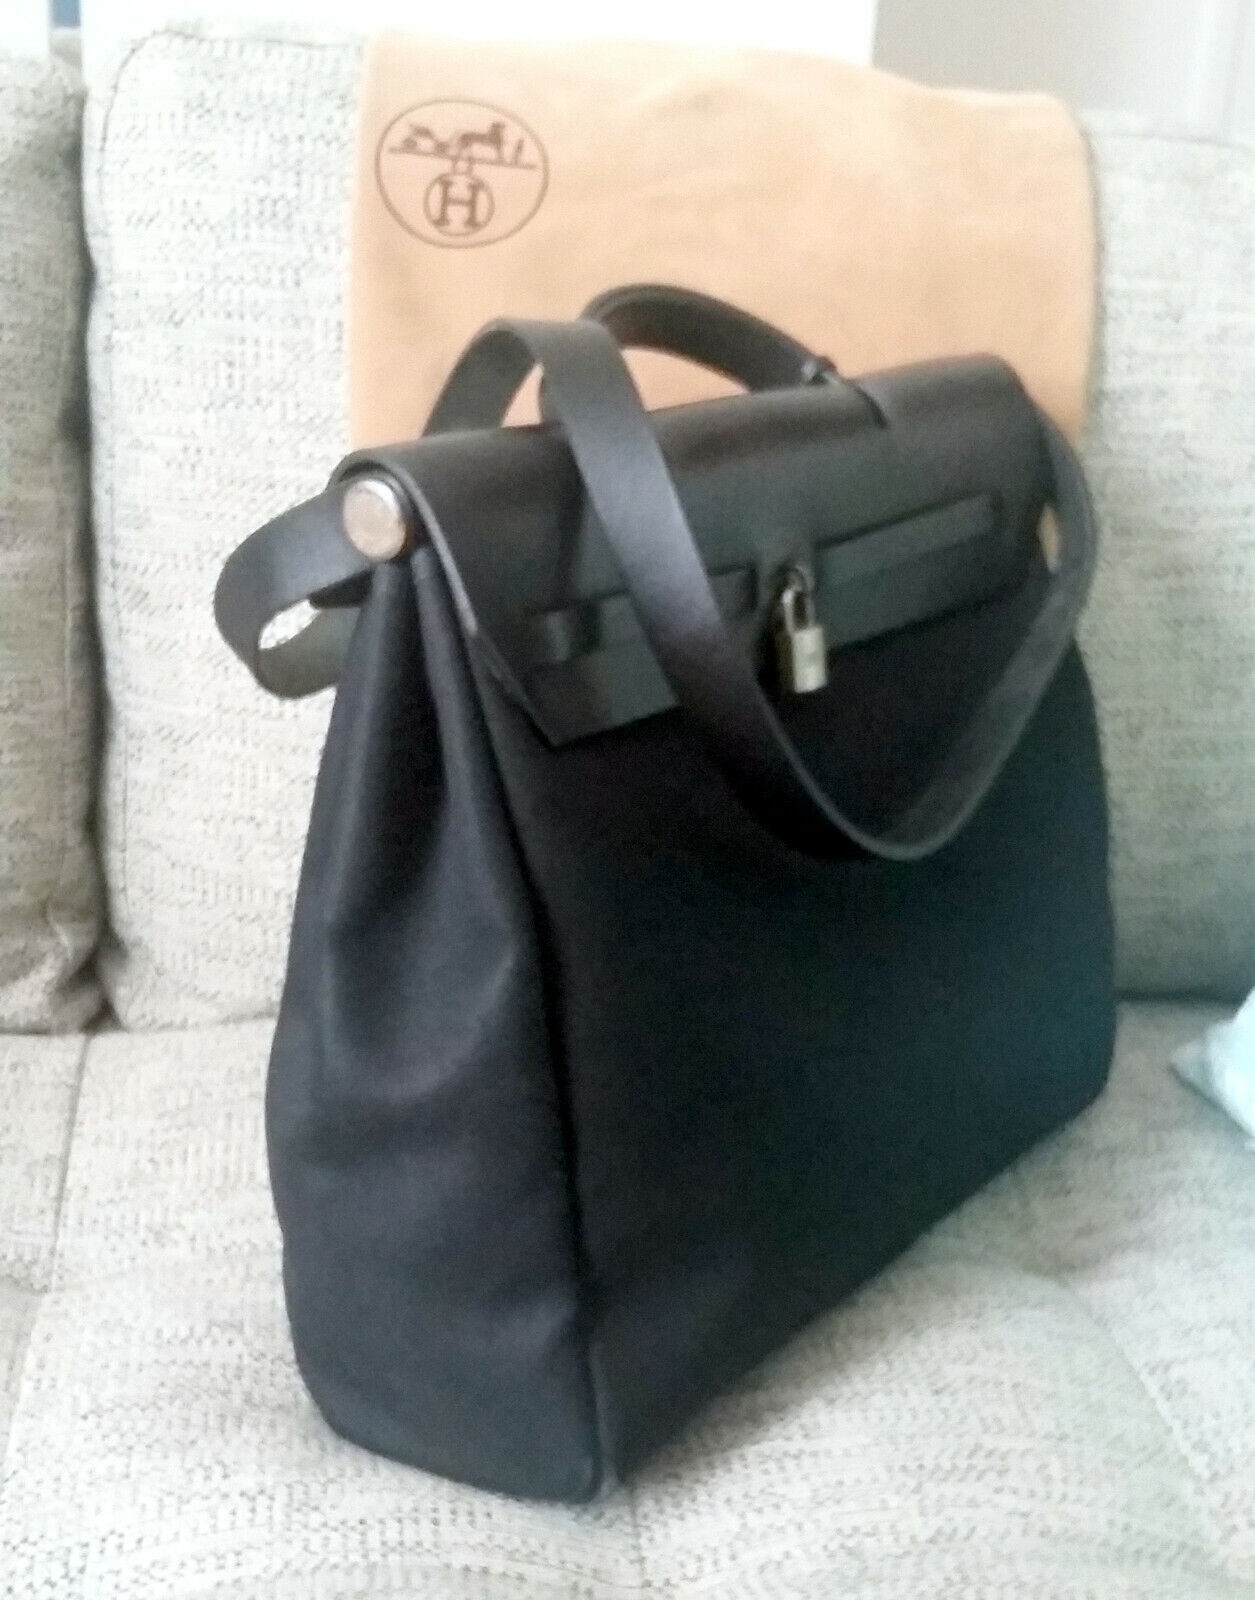 Hermes sac herbag -  toile et cuir -  hermes bag black canvas  black leather